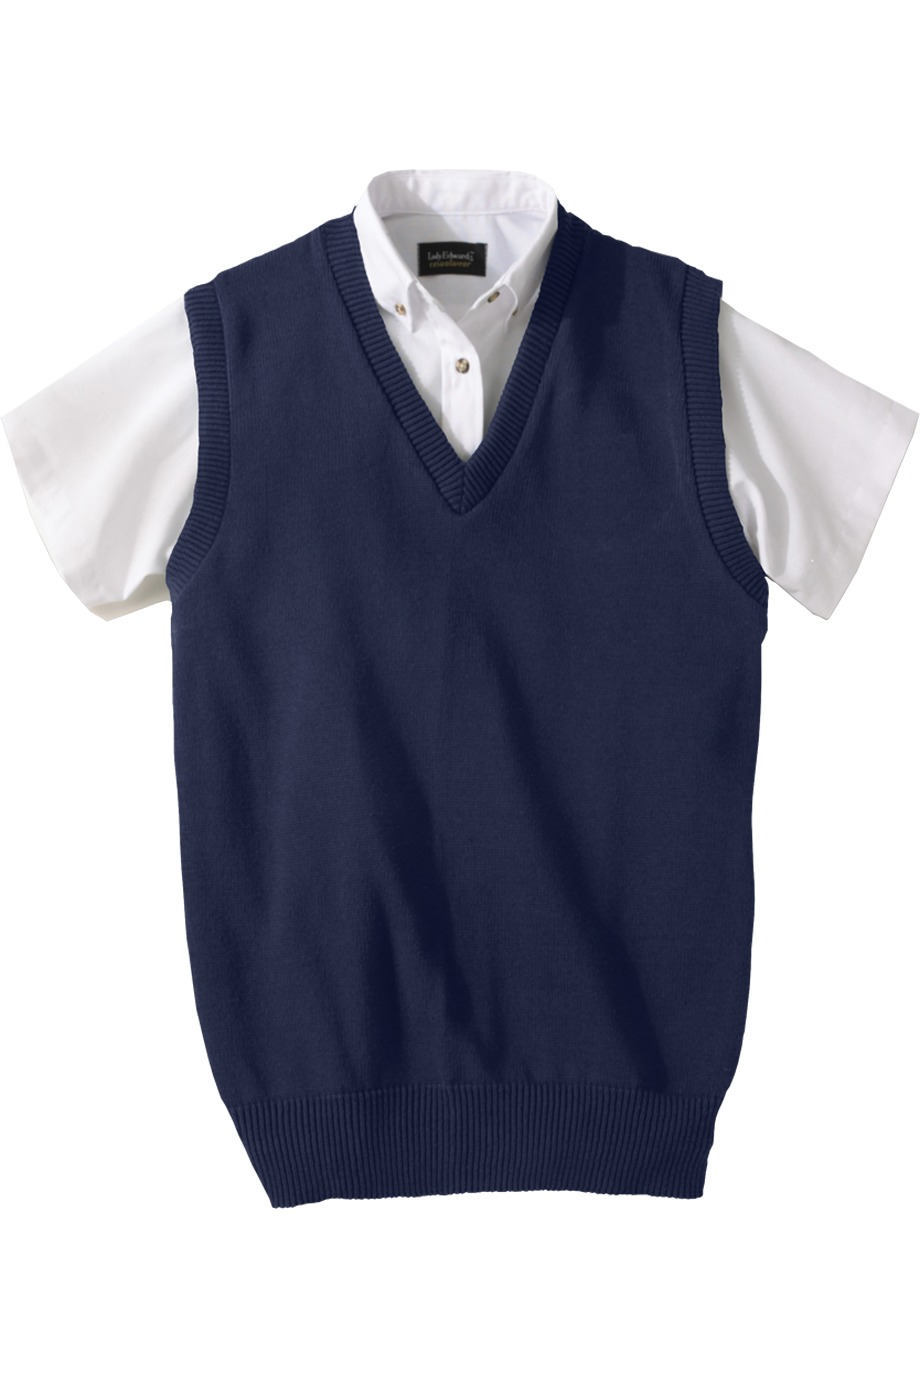 Edwards Garment 791 - Jersey Stitch V-Neck Vest